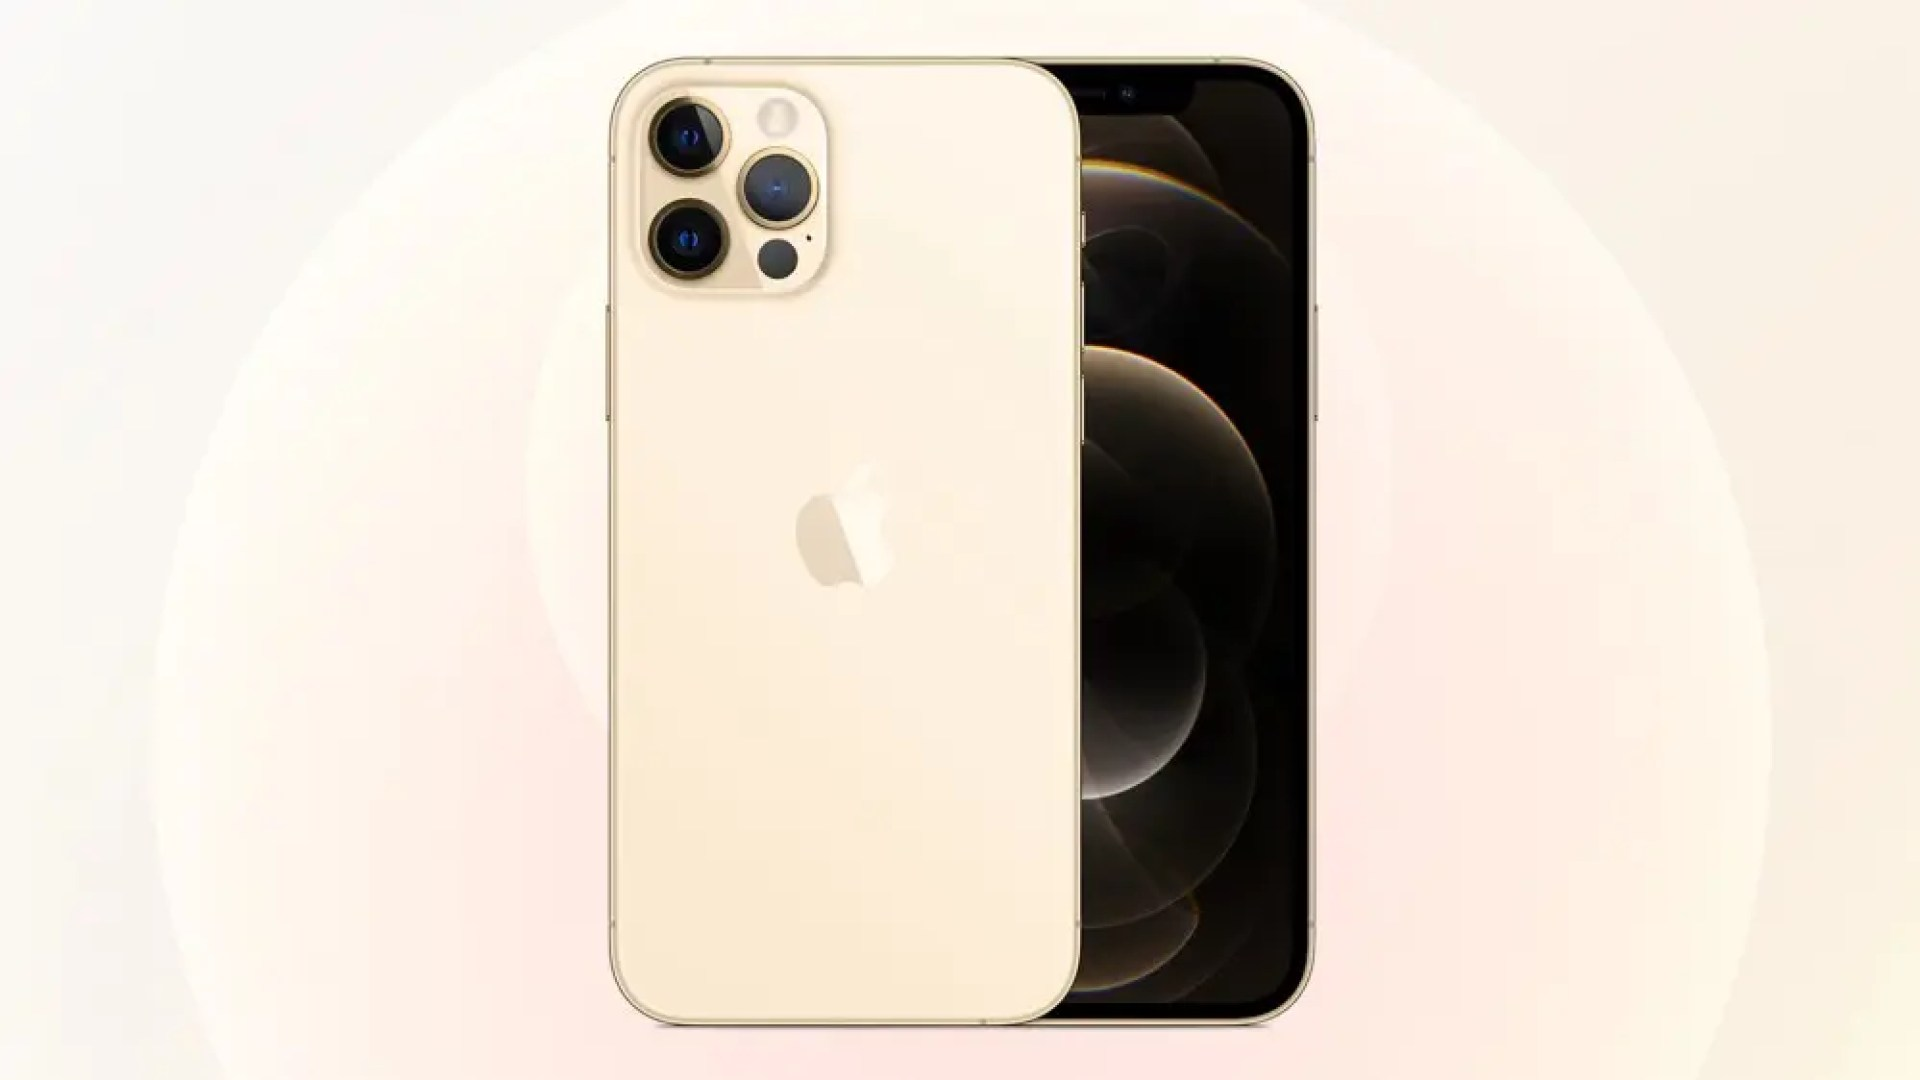 A photo of the gold iPhone 12 Pro.